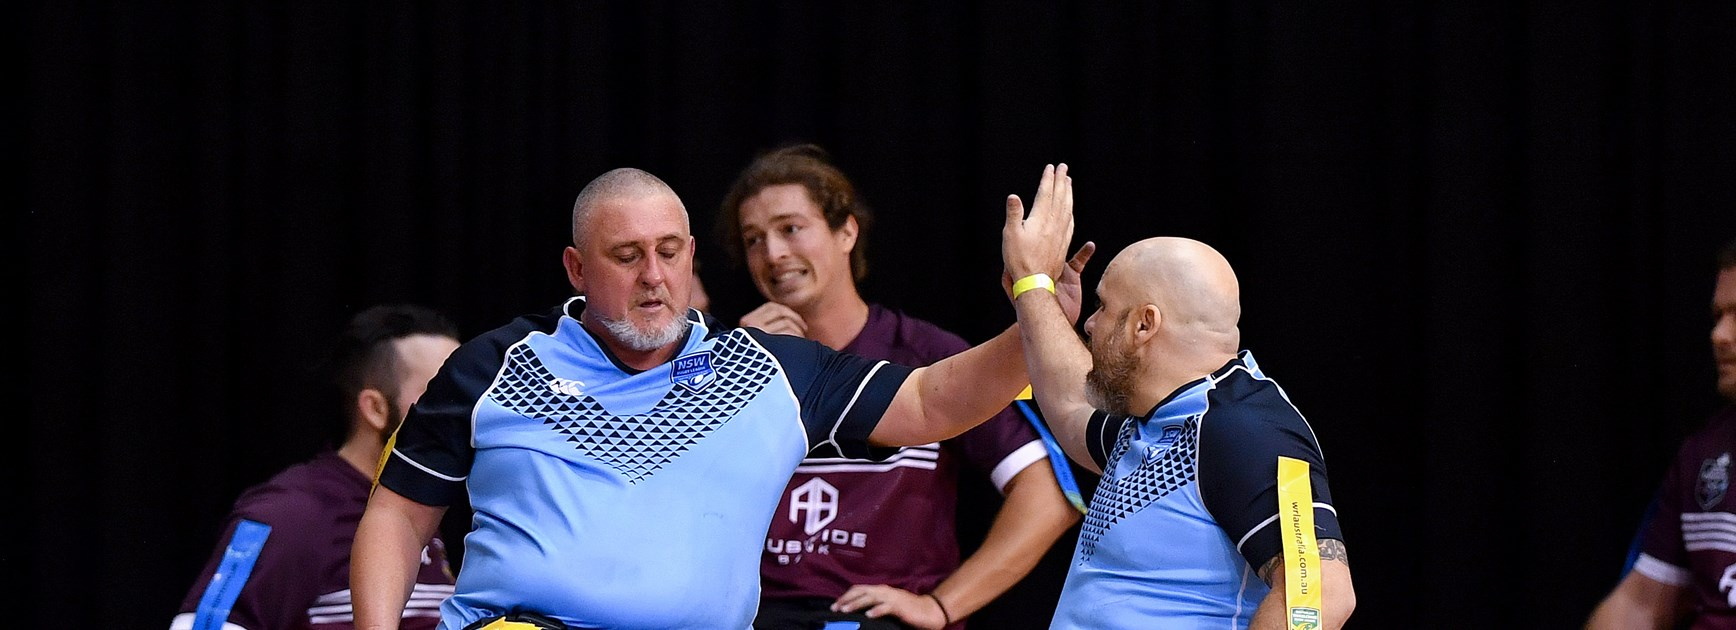 NSW claim victory in Wheelchair State of Origin